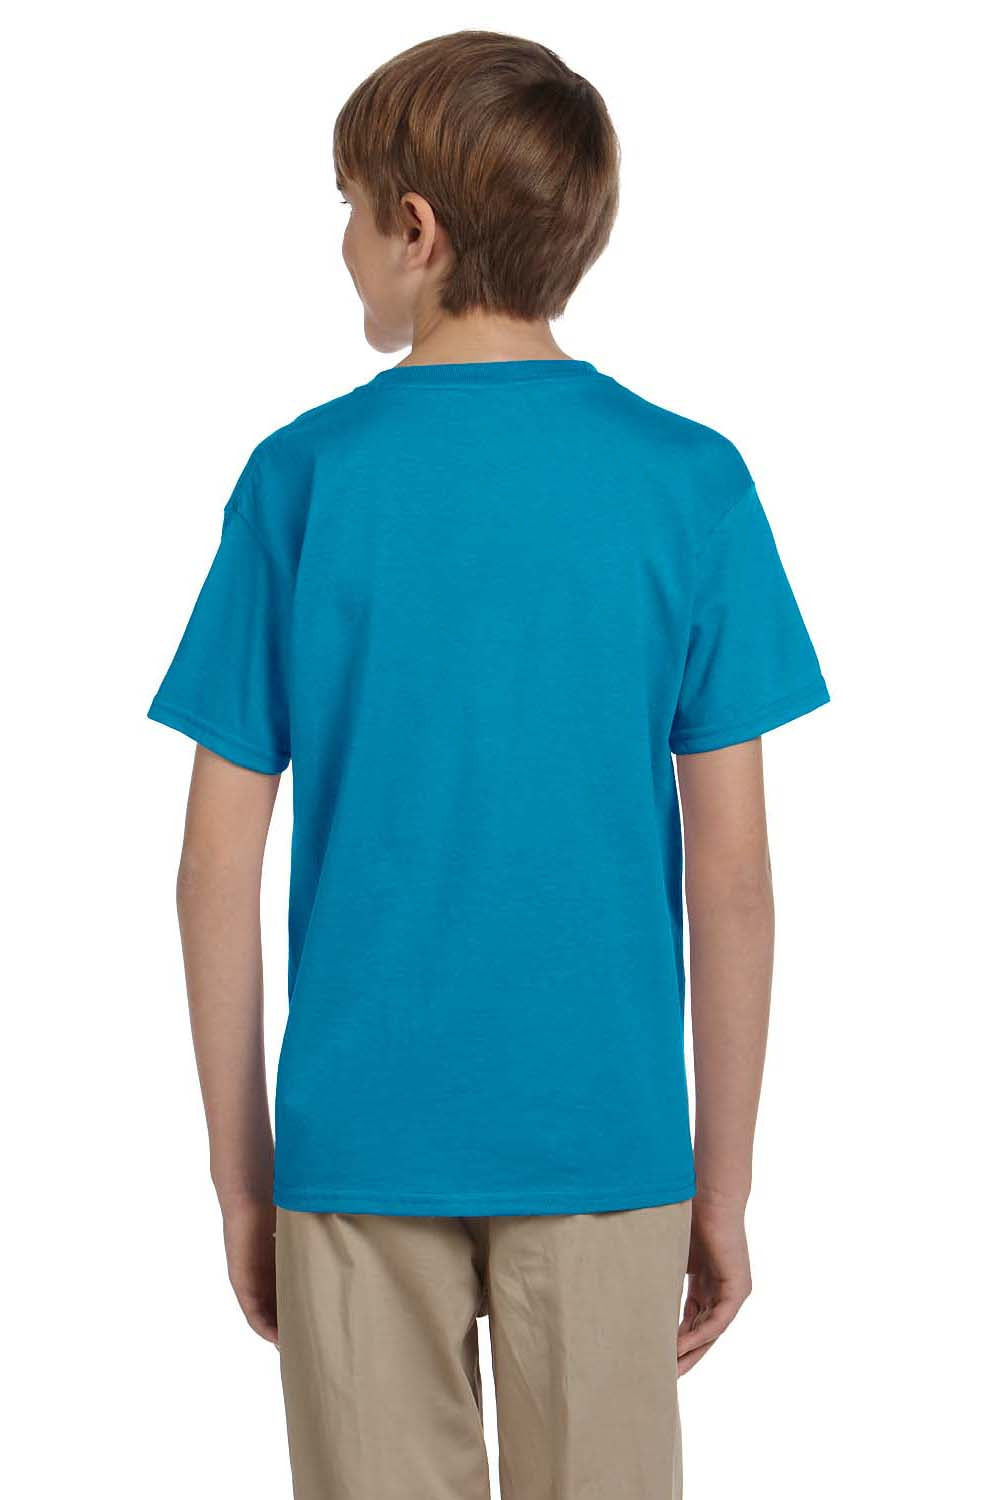 Hanes 5370 Youth EcoSmart Short Sleeve Crewneck T-Shirt Teal Blue Back